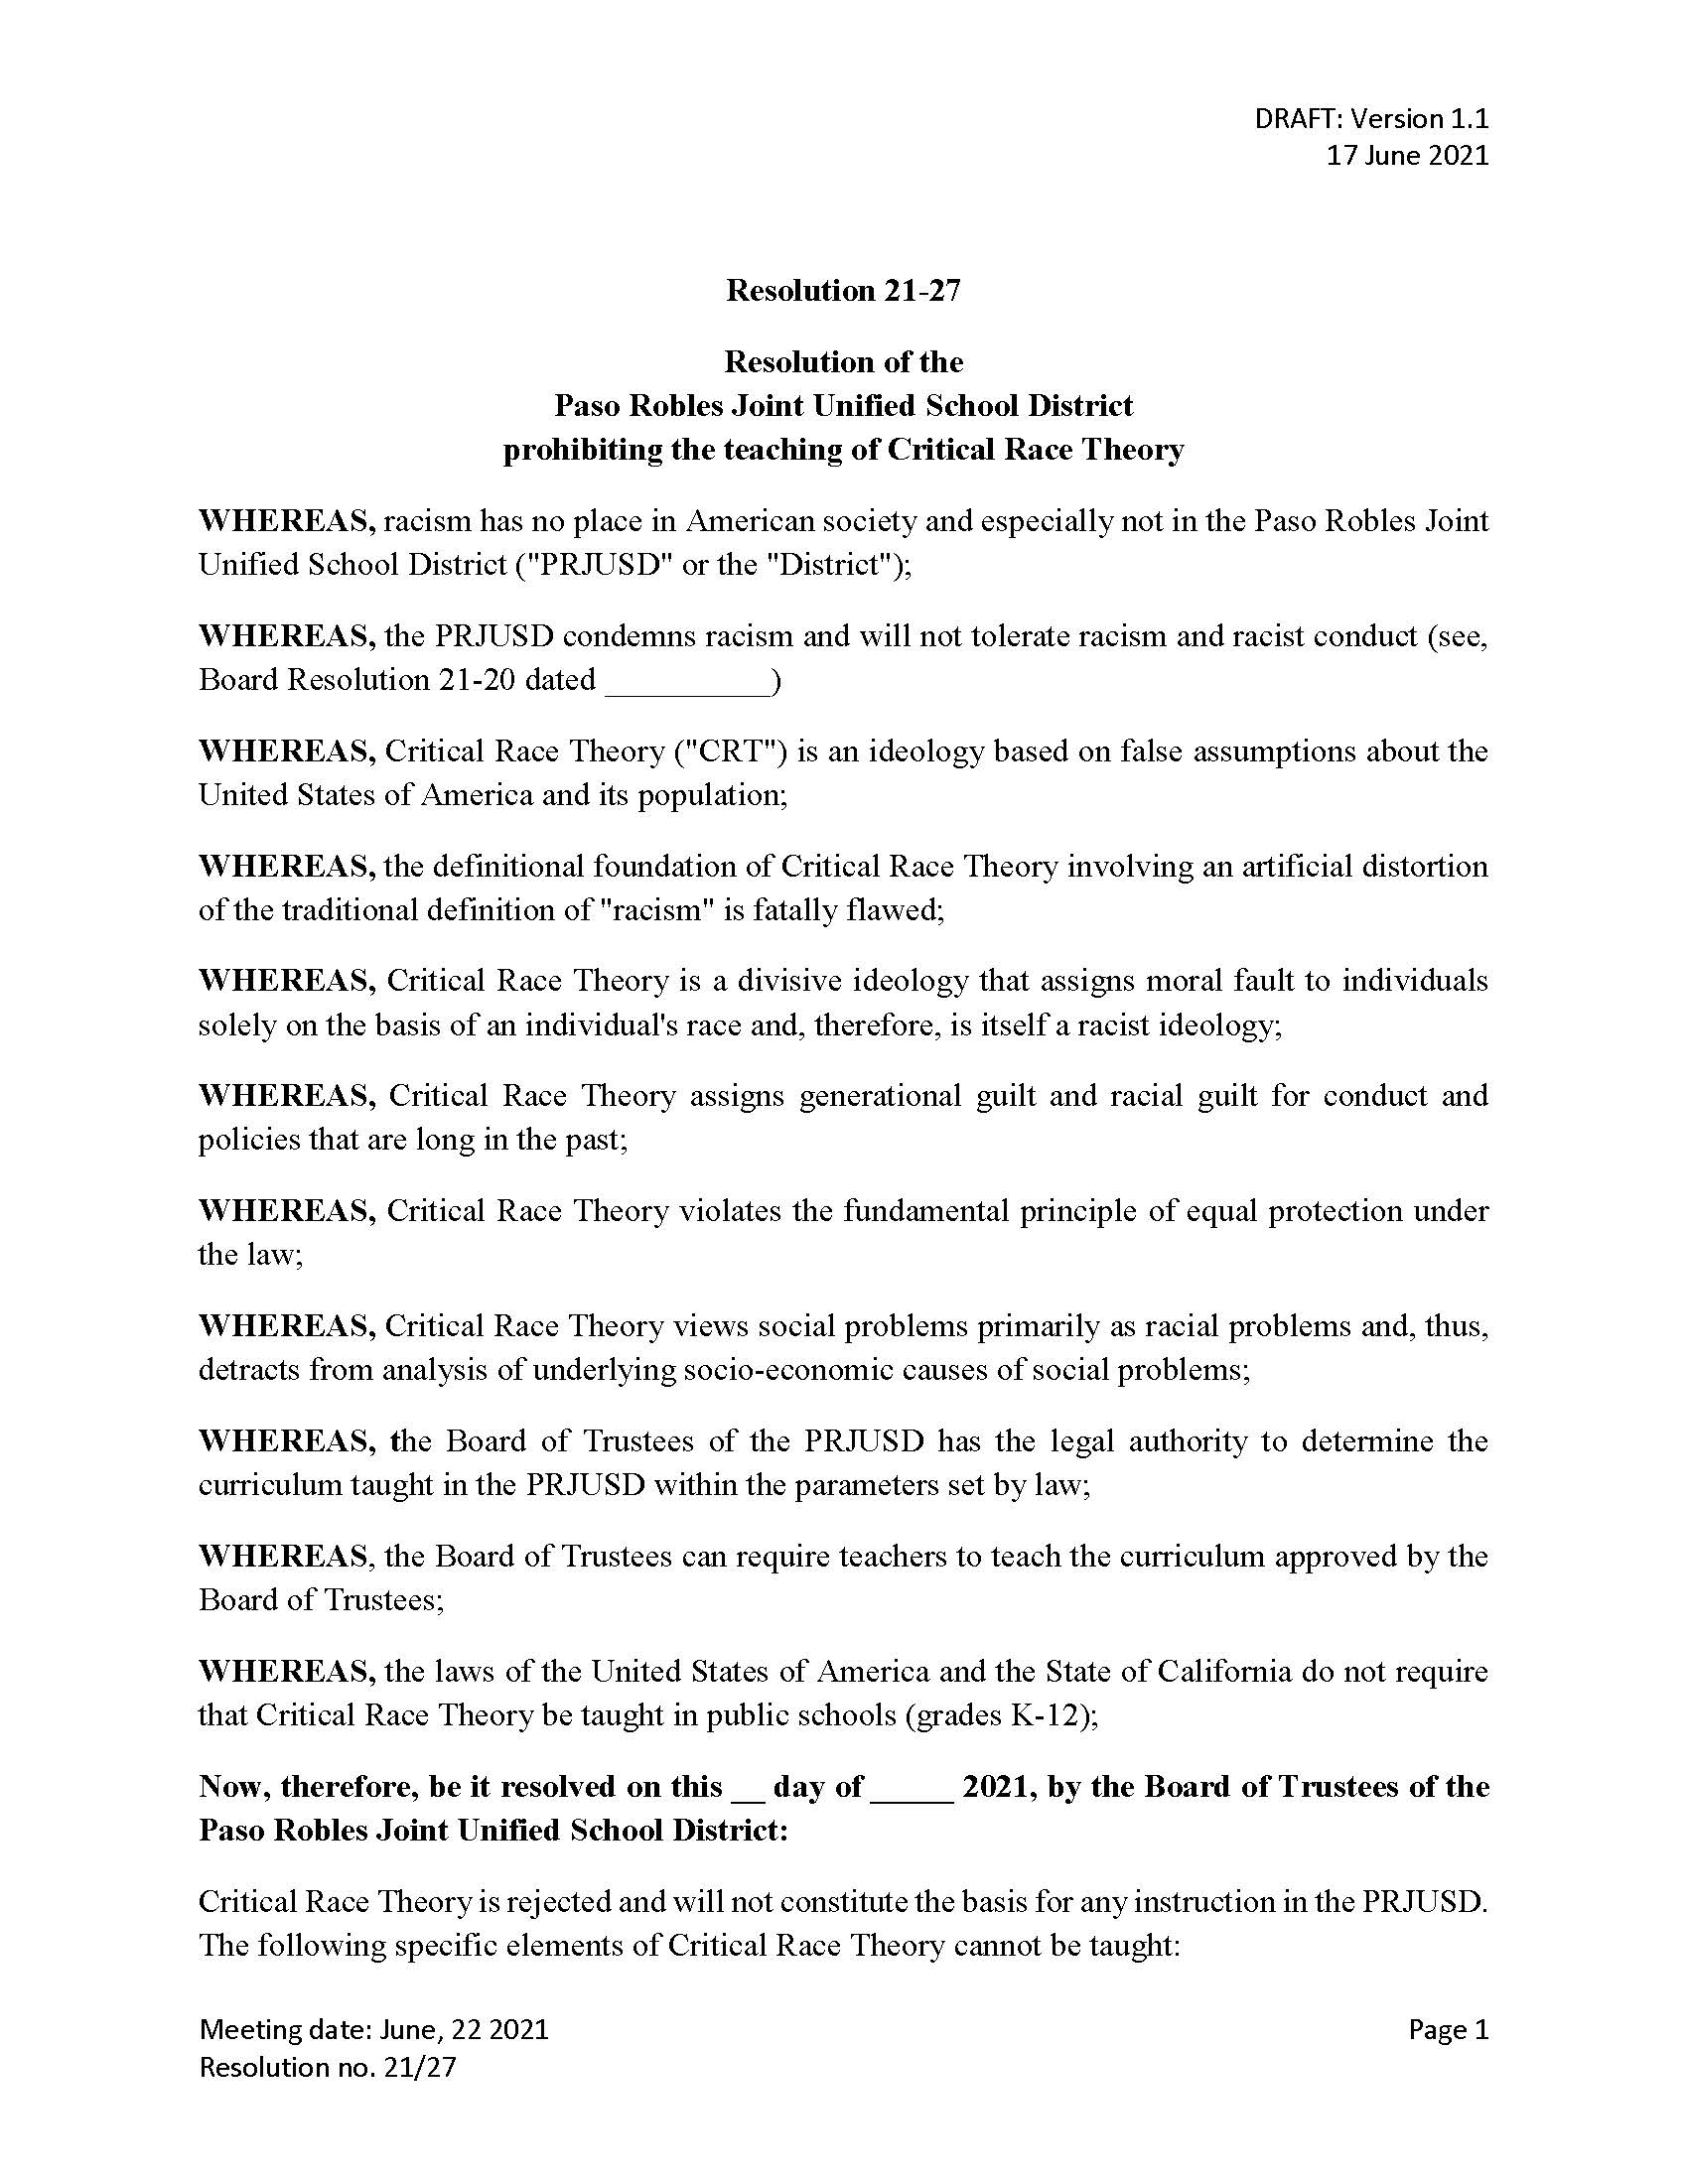 Paso Robles Joint Unified School District Critical Race Theory Resolution Page 1